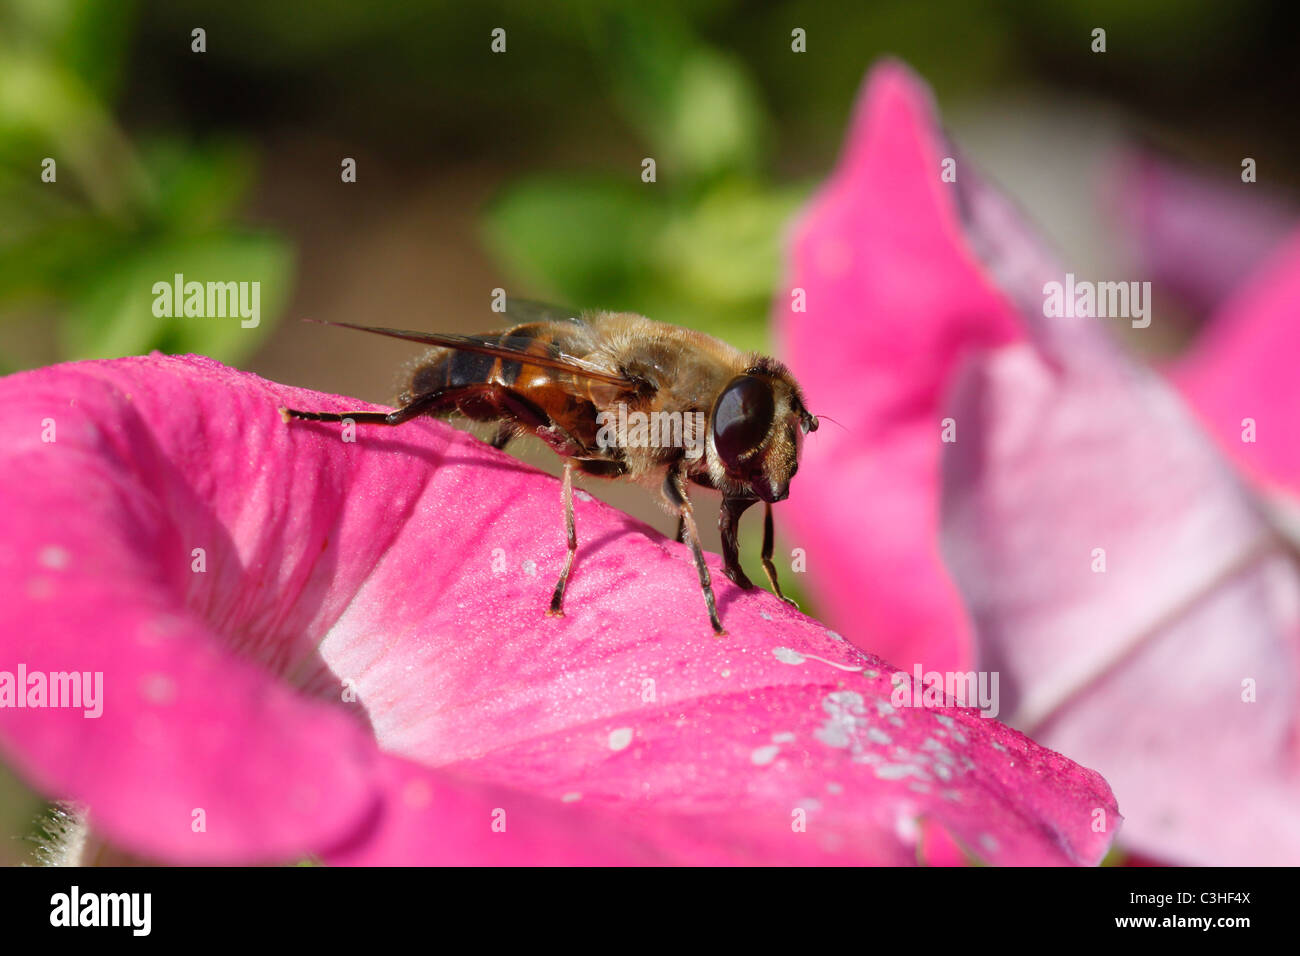 A bee feeding on nectar from a flower. - Stock Image